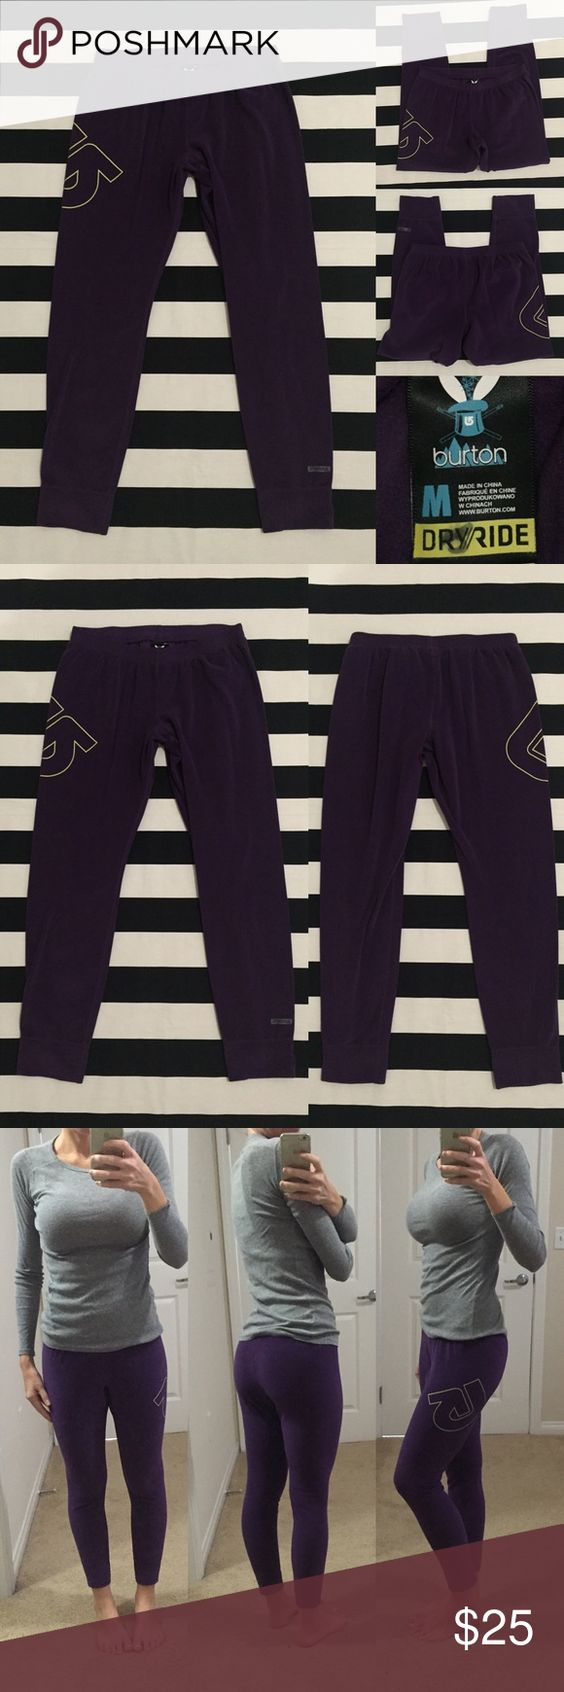 """[Burton] athletic crop sweatpants szS-M [Burton] athletic crop sweatpants szS-M •🆕listing •good used condition •plum/eggplant purple color with yellow screen logo (no wear/cracking) •may fit S-M, tag size M •length/inseam 24"""" •material 93% polyester 7% spandex, ultra soft stretchy fleece feel •subtle material changes from wash/wear, otherwise good condition •offers welcomed using the offer feature or bundle for the best discount• Burton Pants Ankle & Cropped"""